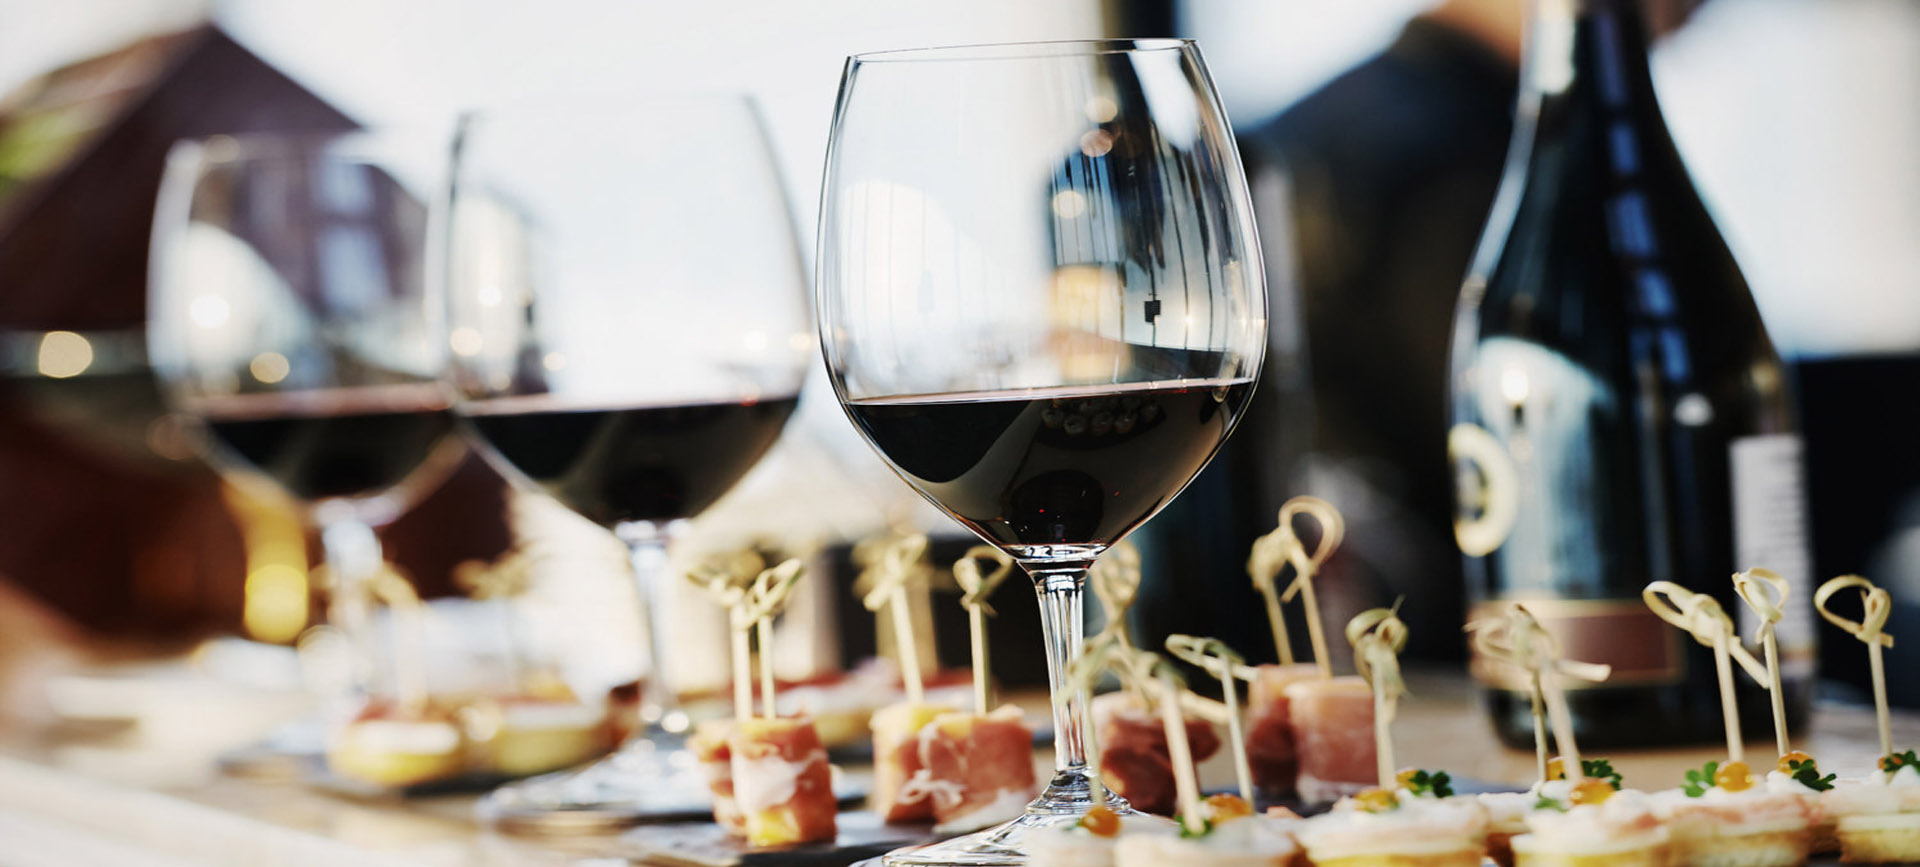 Wine and dine in luxury at The Colony Club, Mayfair